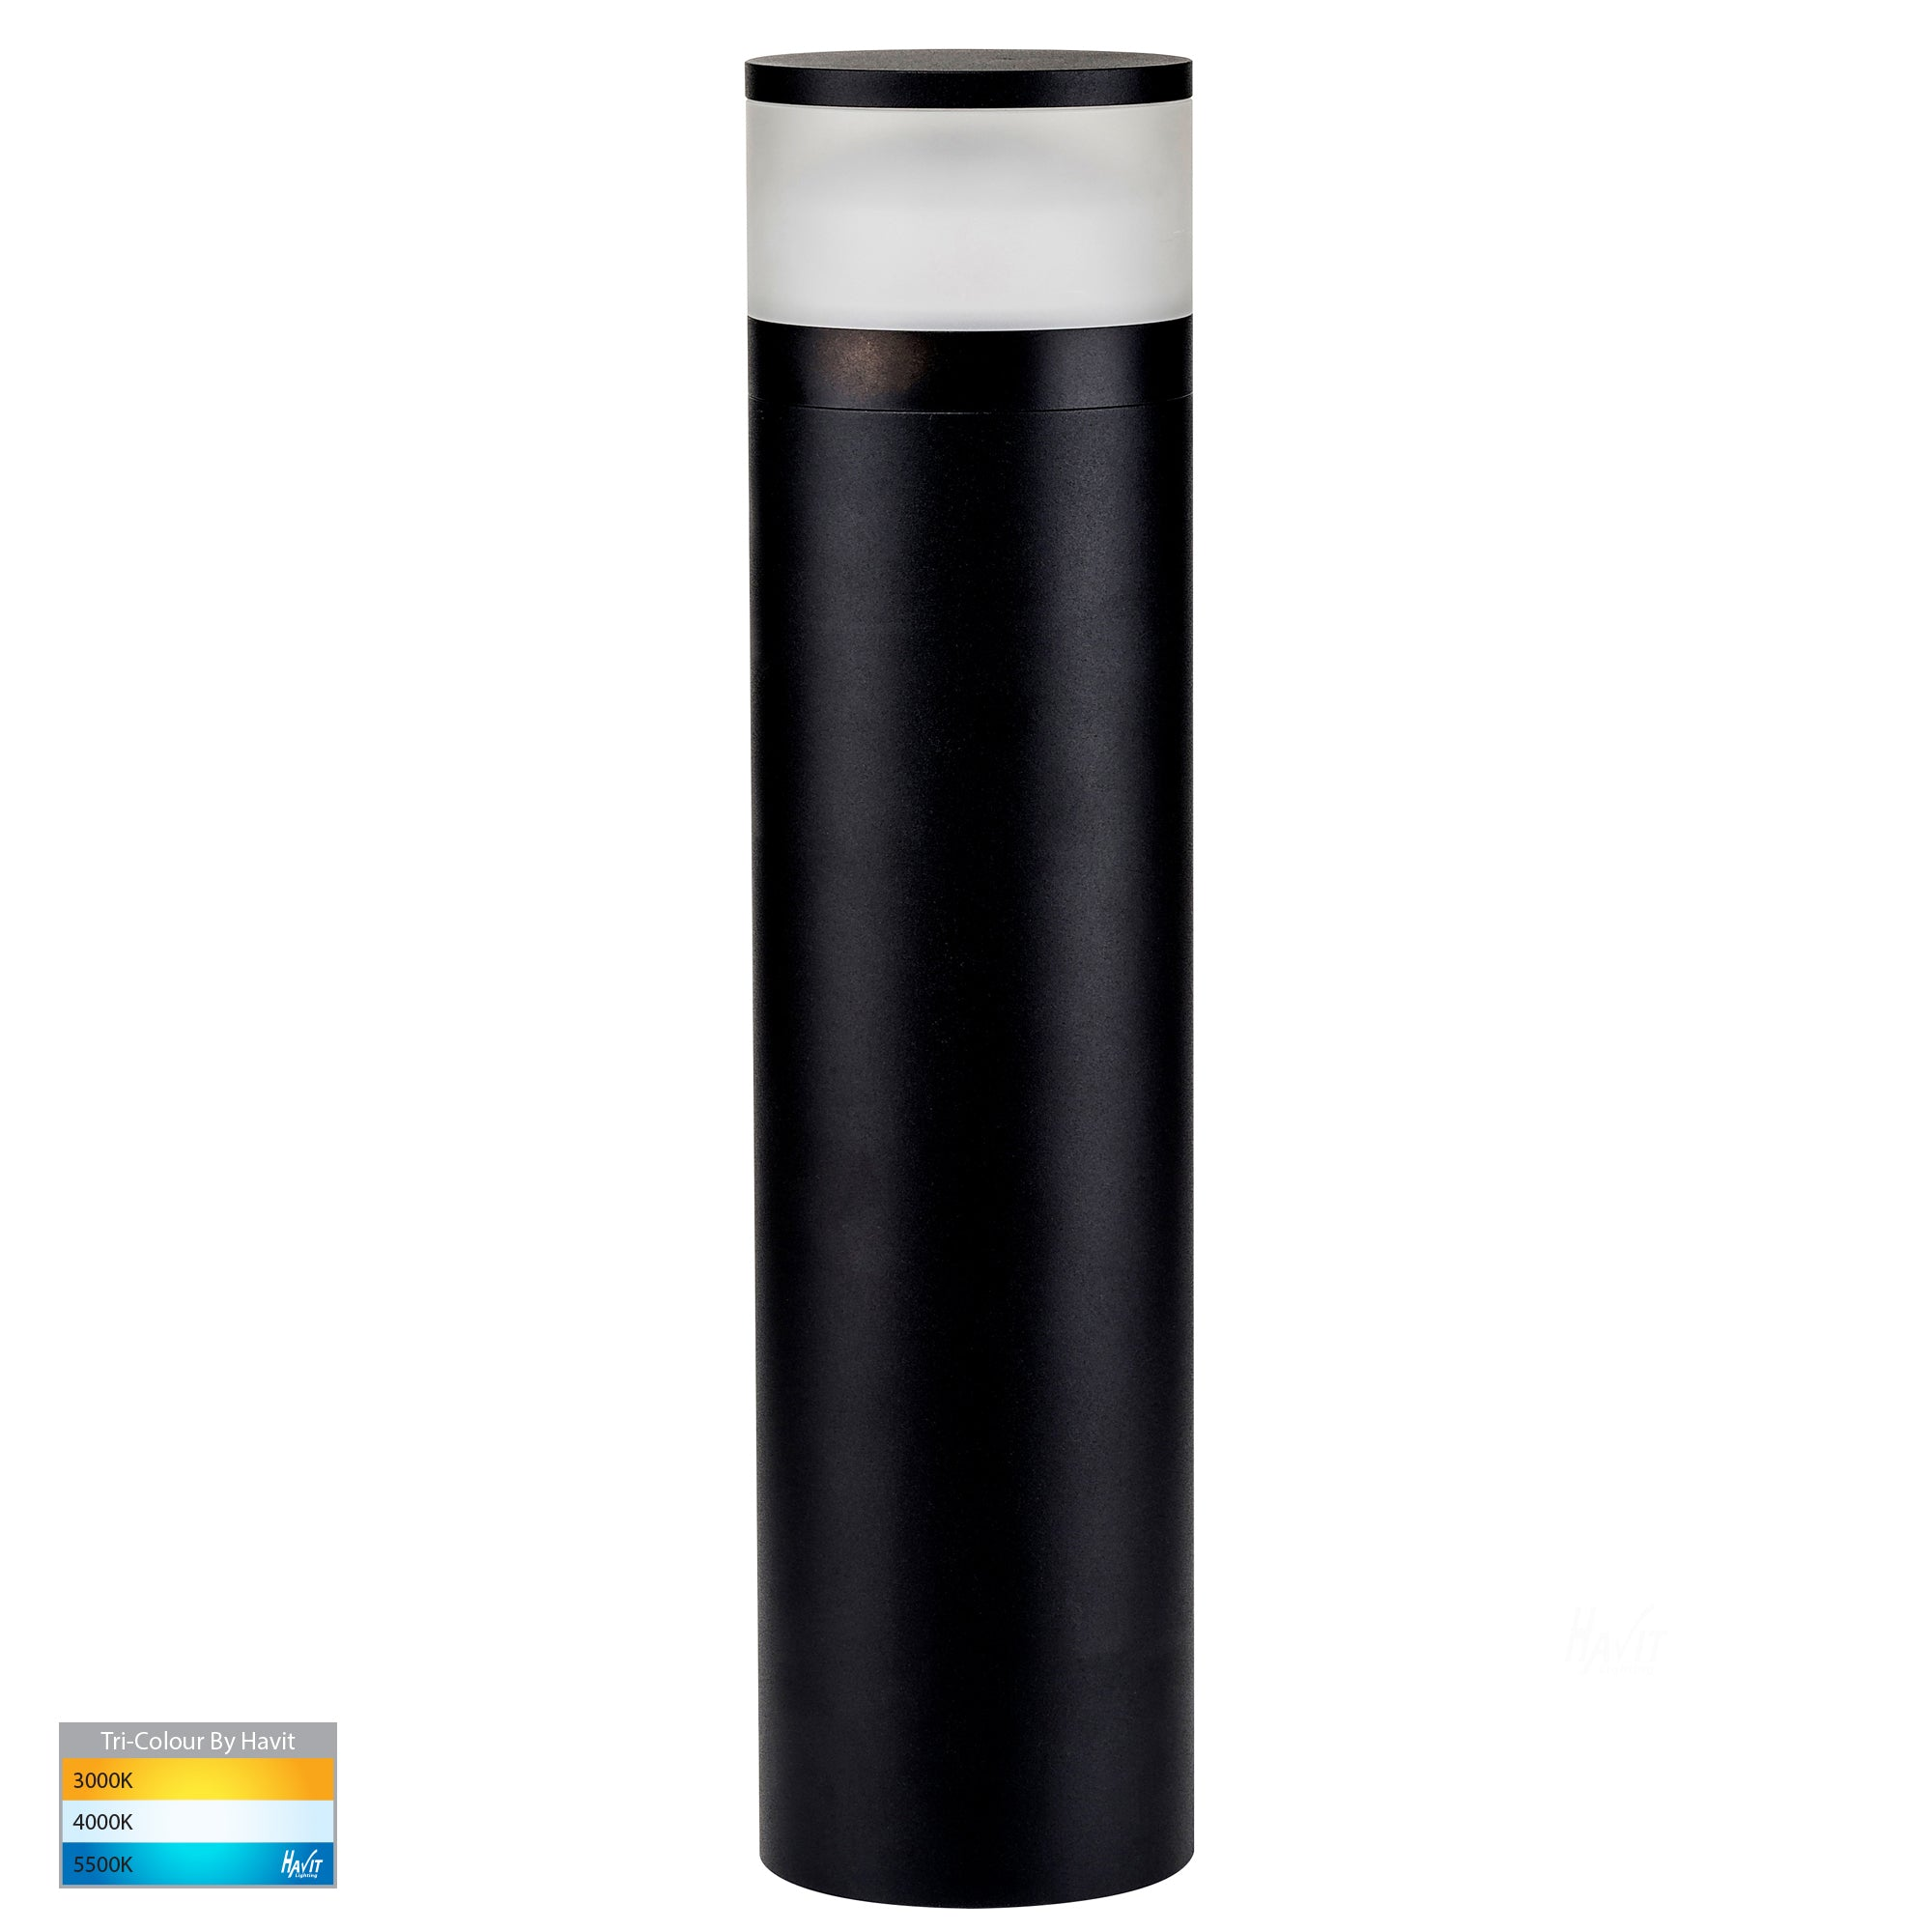 HV1625T-BLK - Highlite Black LED Bollard Light